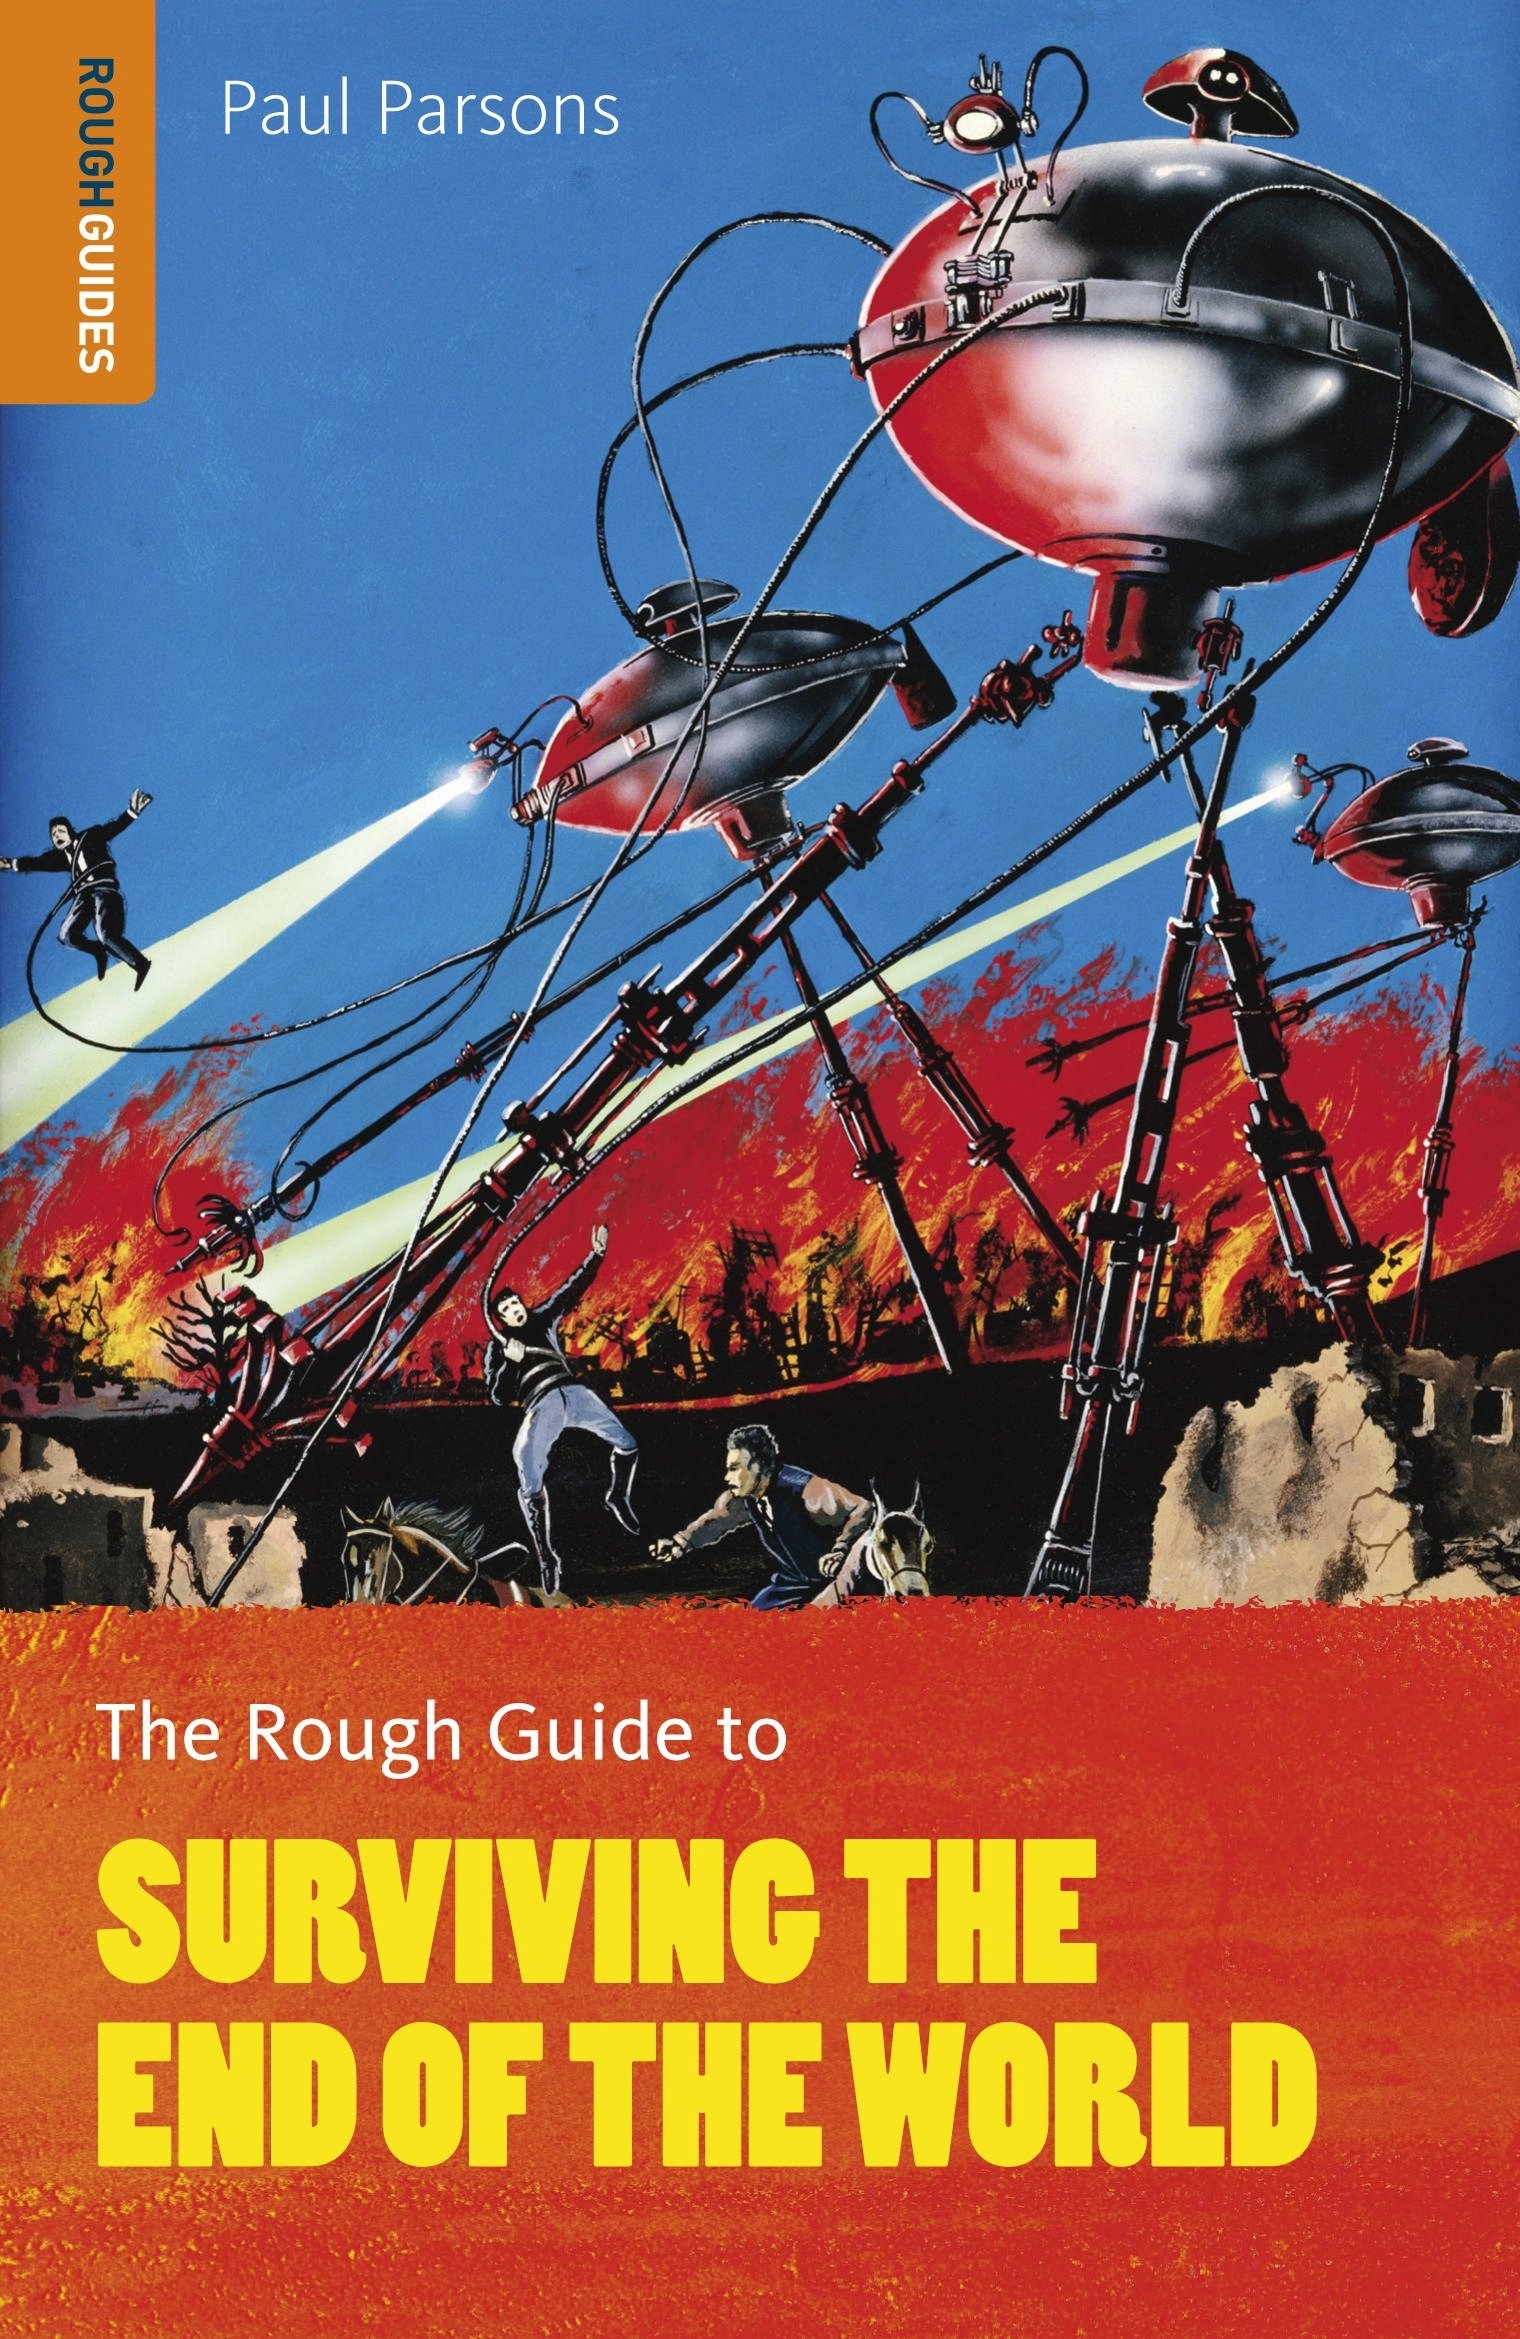 The Rough Guide to Surviving the End of the World (Rough Guides) PDF